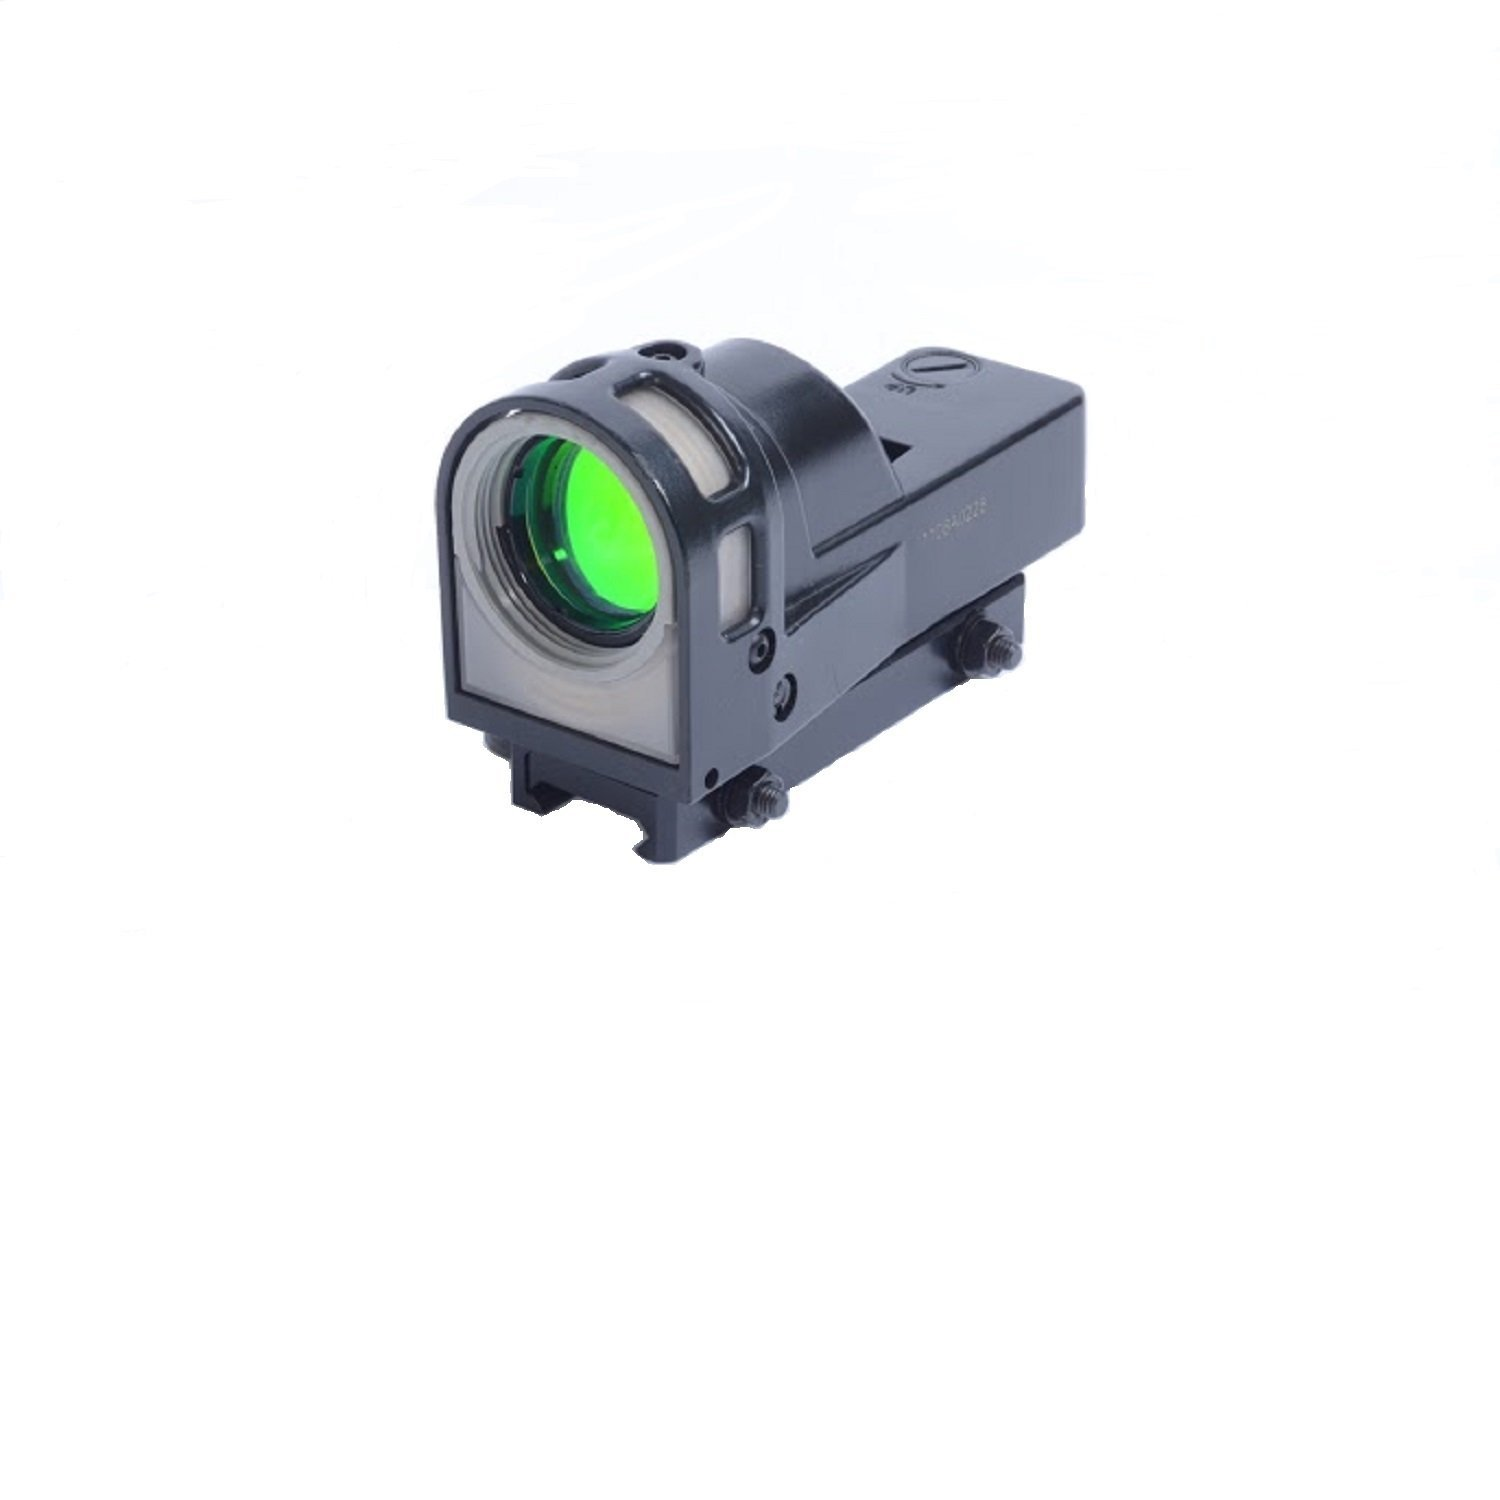 Meprolight Self-Powered Day/Night Reflex Sight with Dust Cover Bullseye Reticle by Meprolight